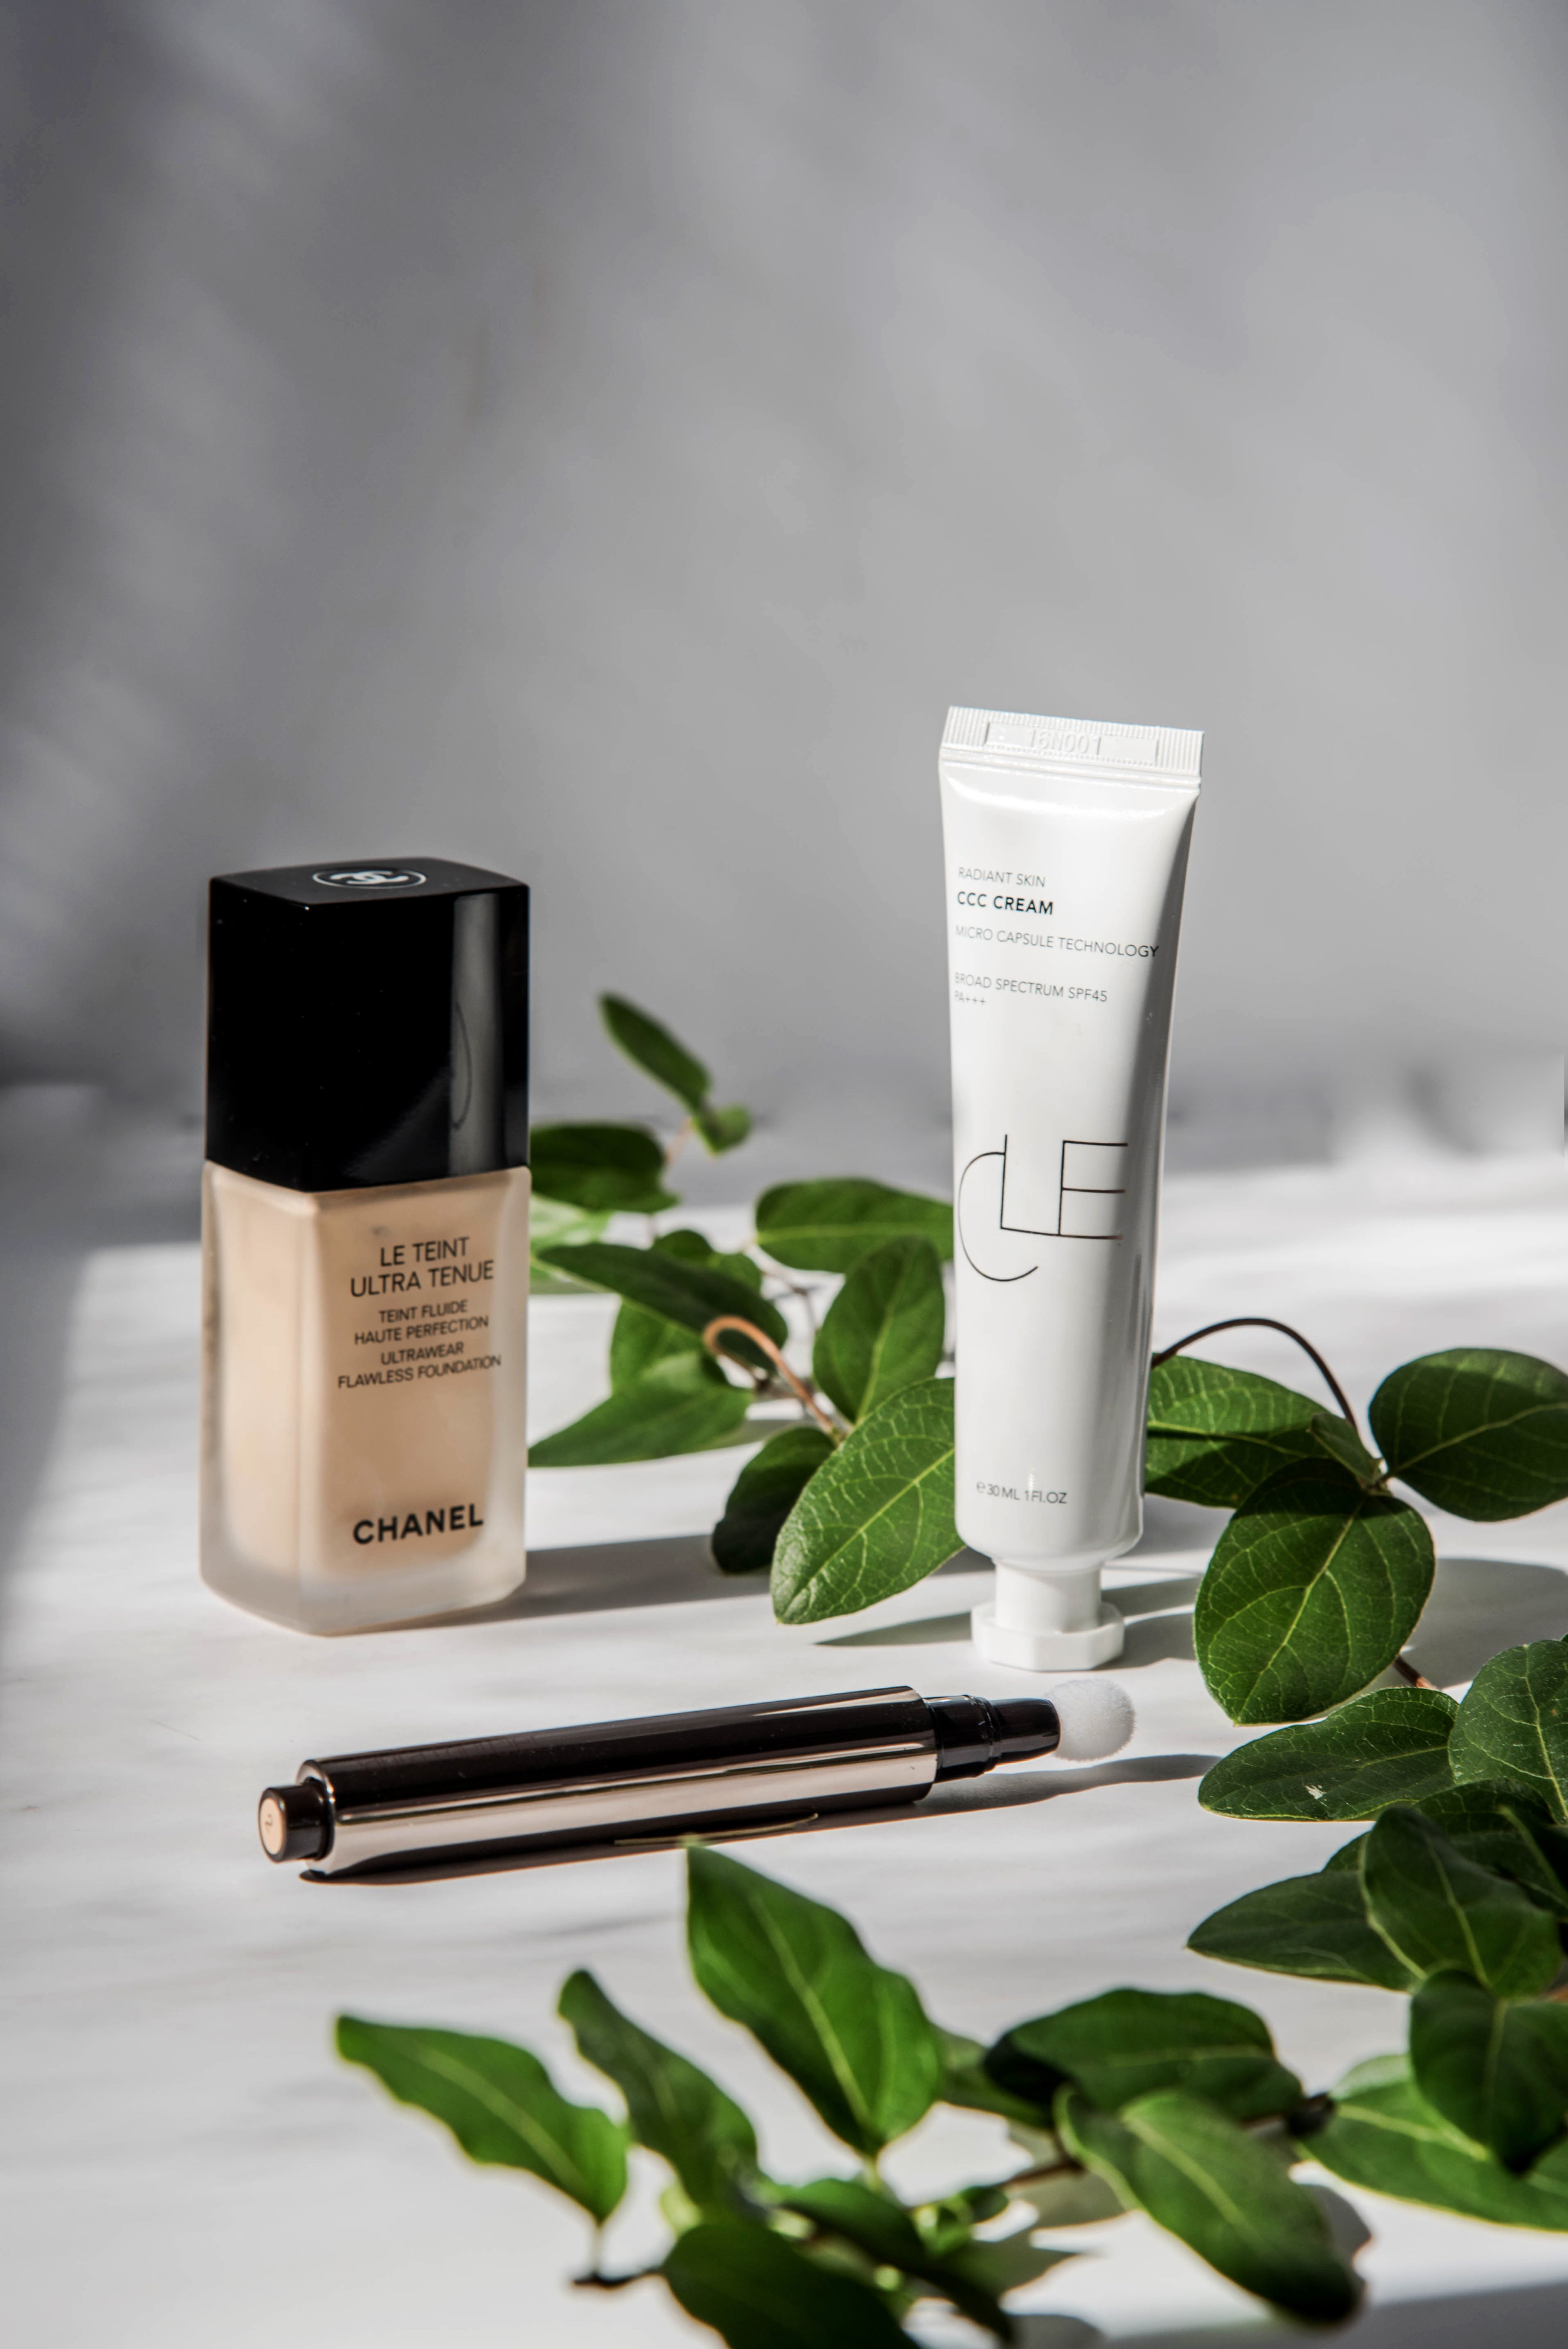 ROSE & IVY Journal 3 Skin Perfecting Products Autumn 2016 Chanel, Lauara Mercier and CLE Cosmetics